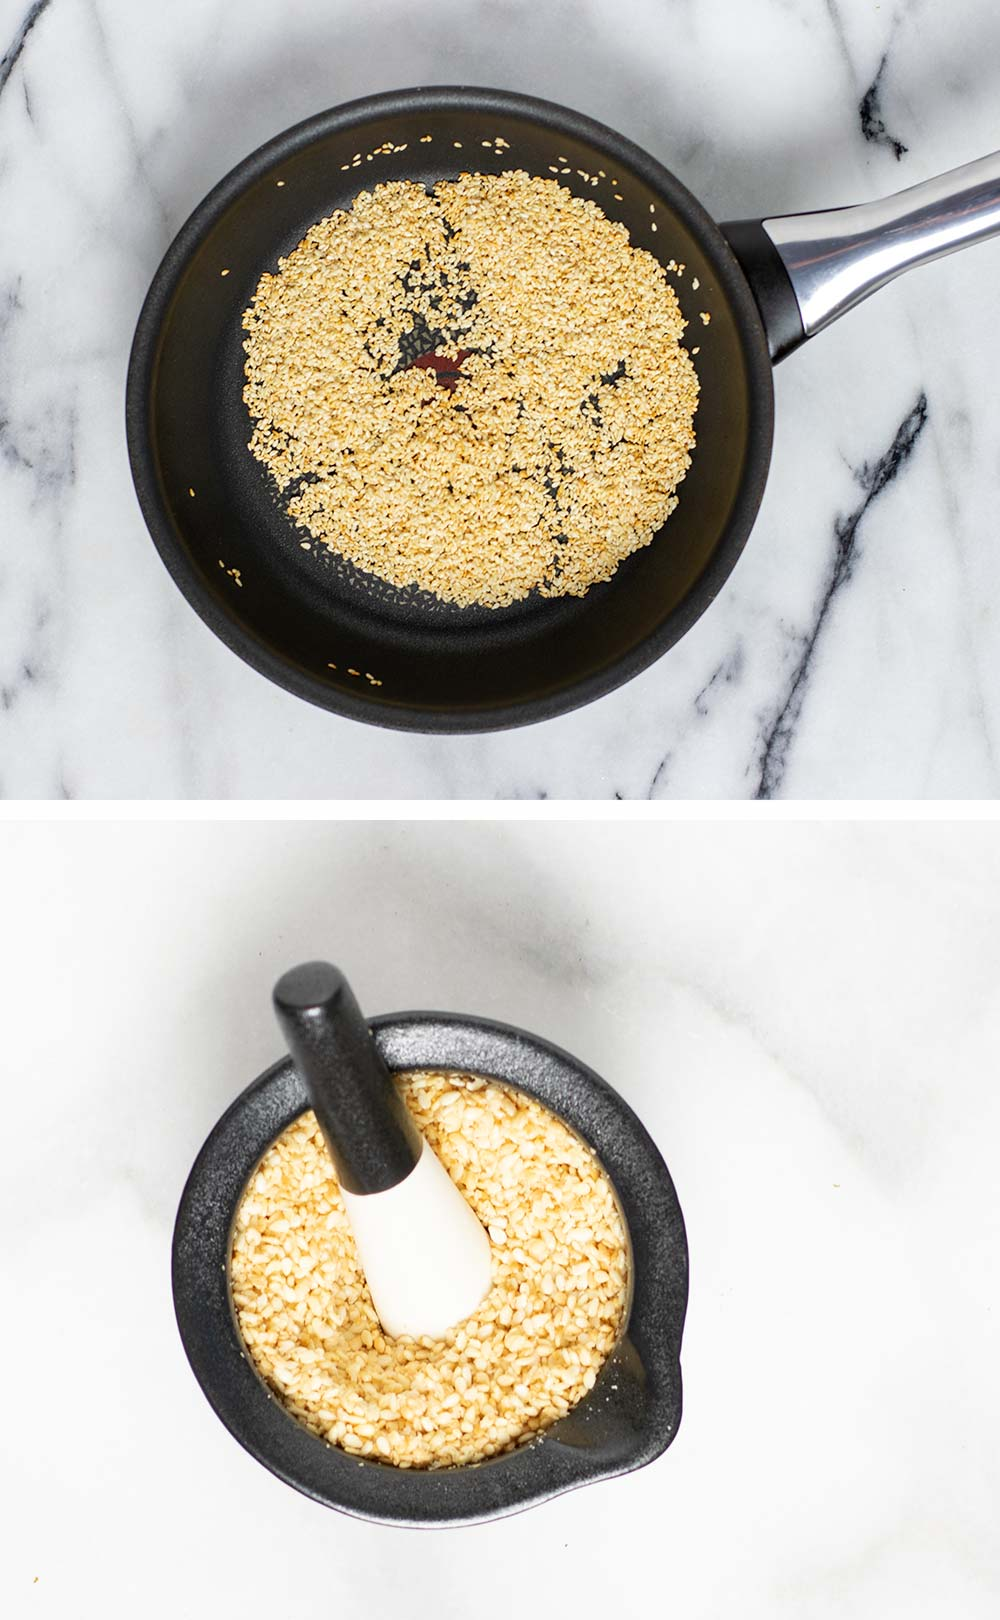 Showing how sesame is roasted in a pan and then crushed in a grinder.